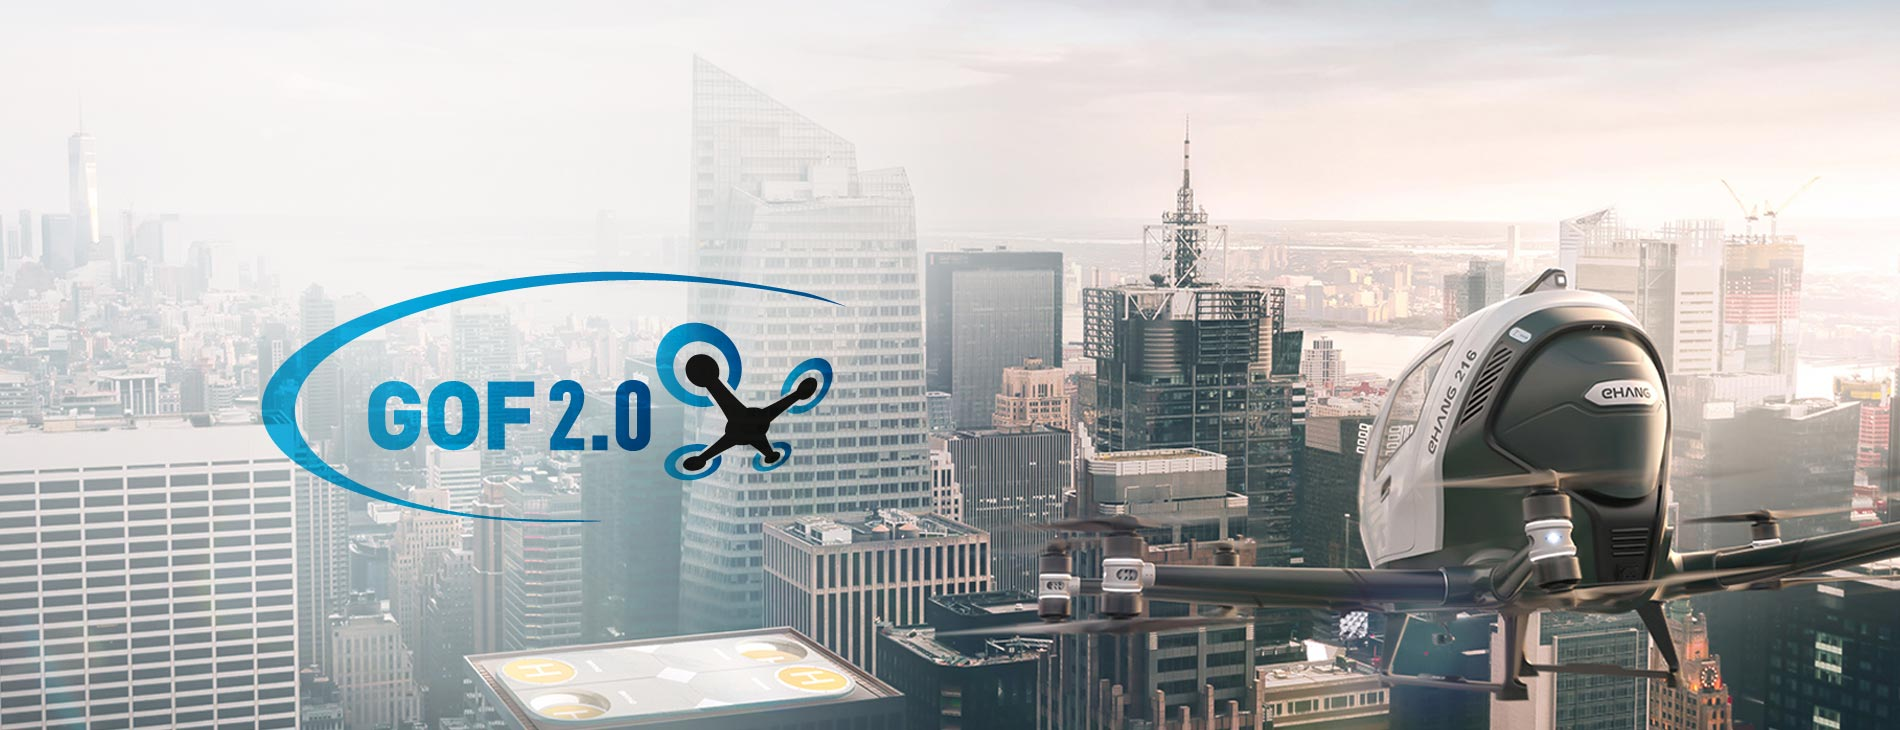 SESAR GOF 2.0 Integrated Urban Airspace Validation